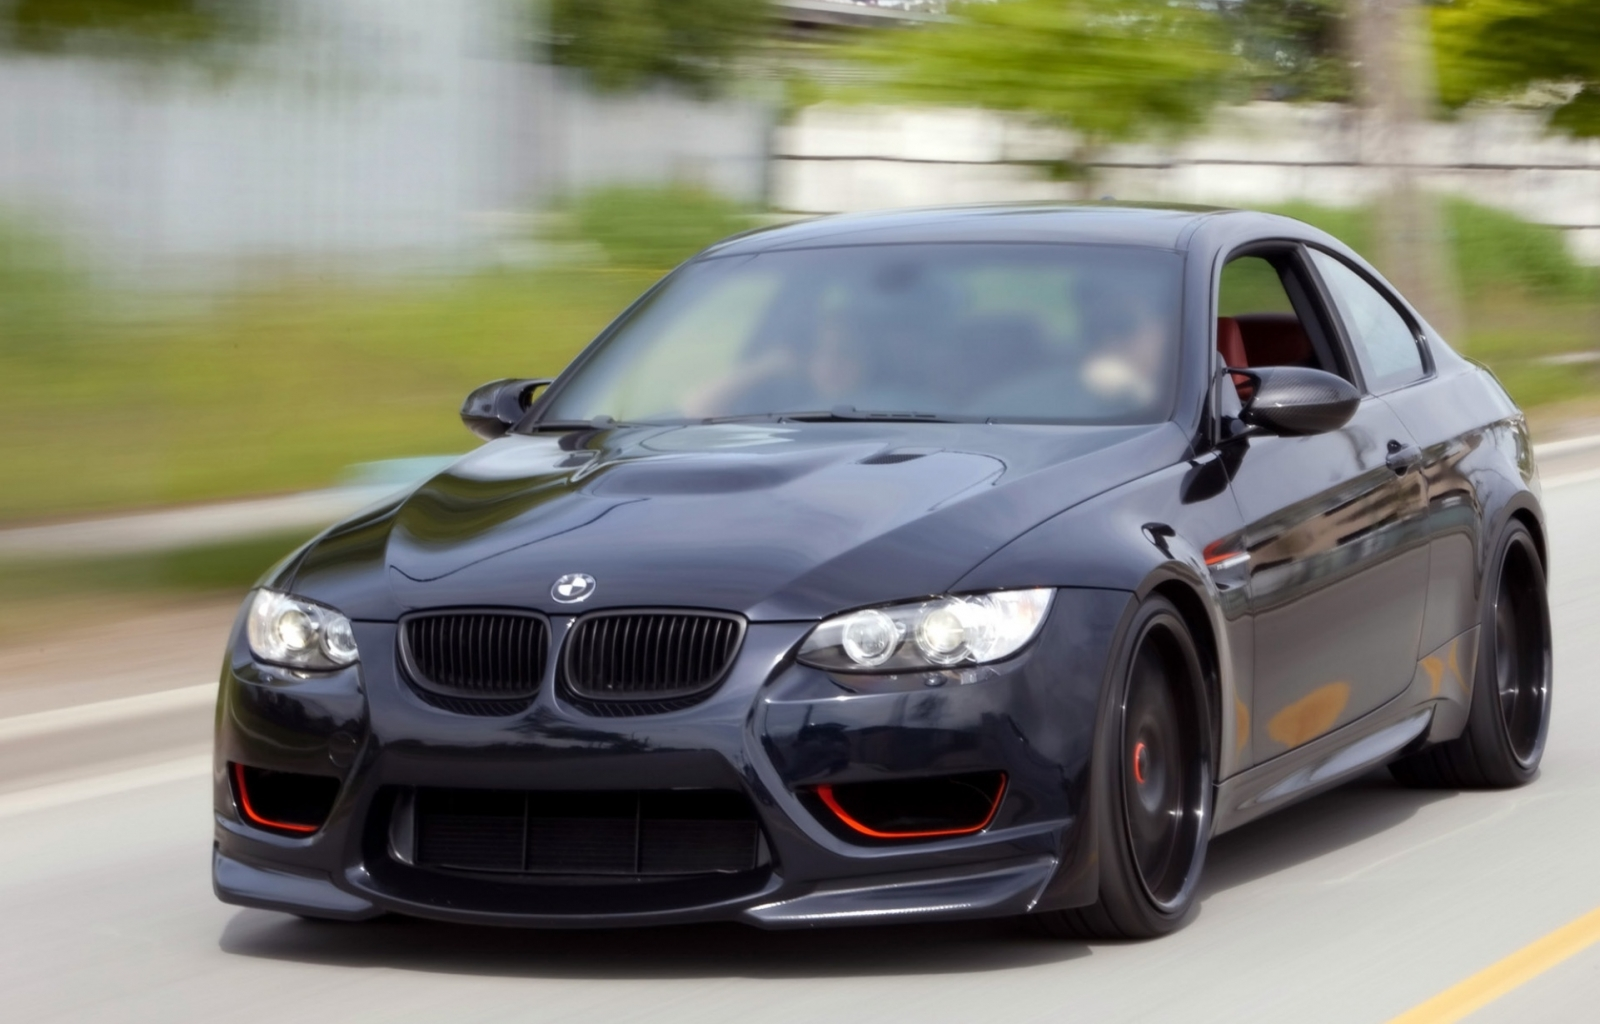 38736 download wallpaper Transport, Auto, Bmw screensavers and pictures for free